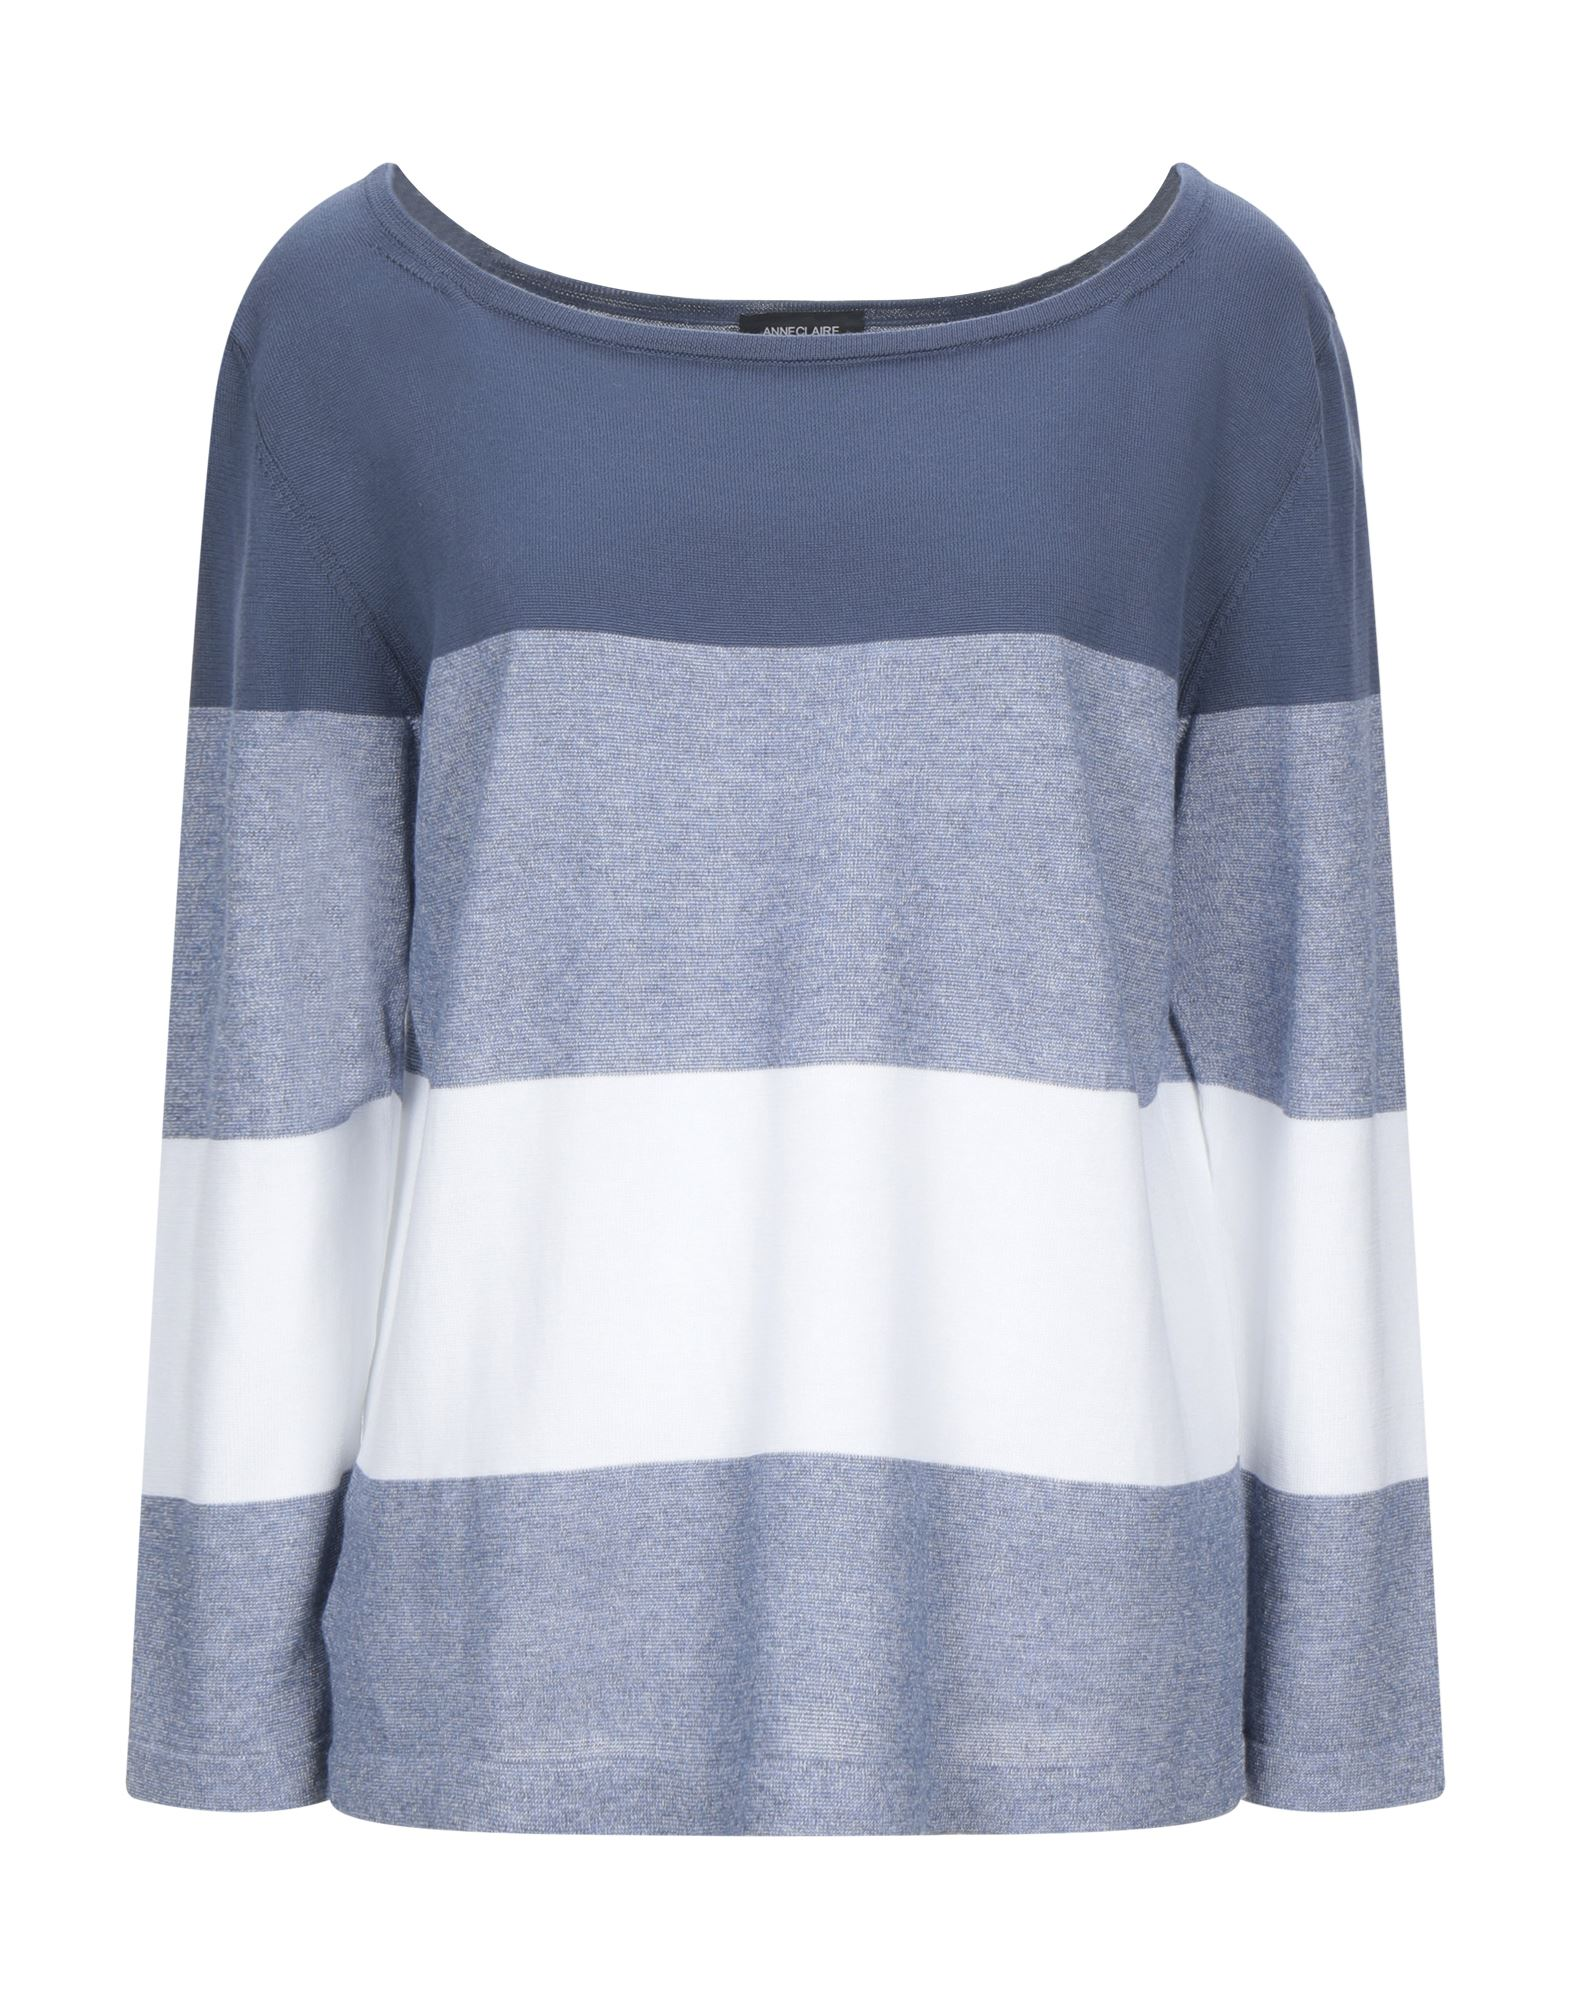 ANNECLAIRE Sweaters - Item 14095996